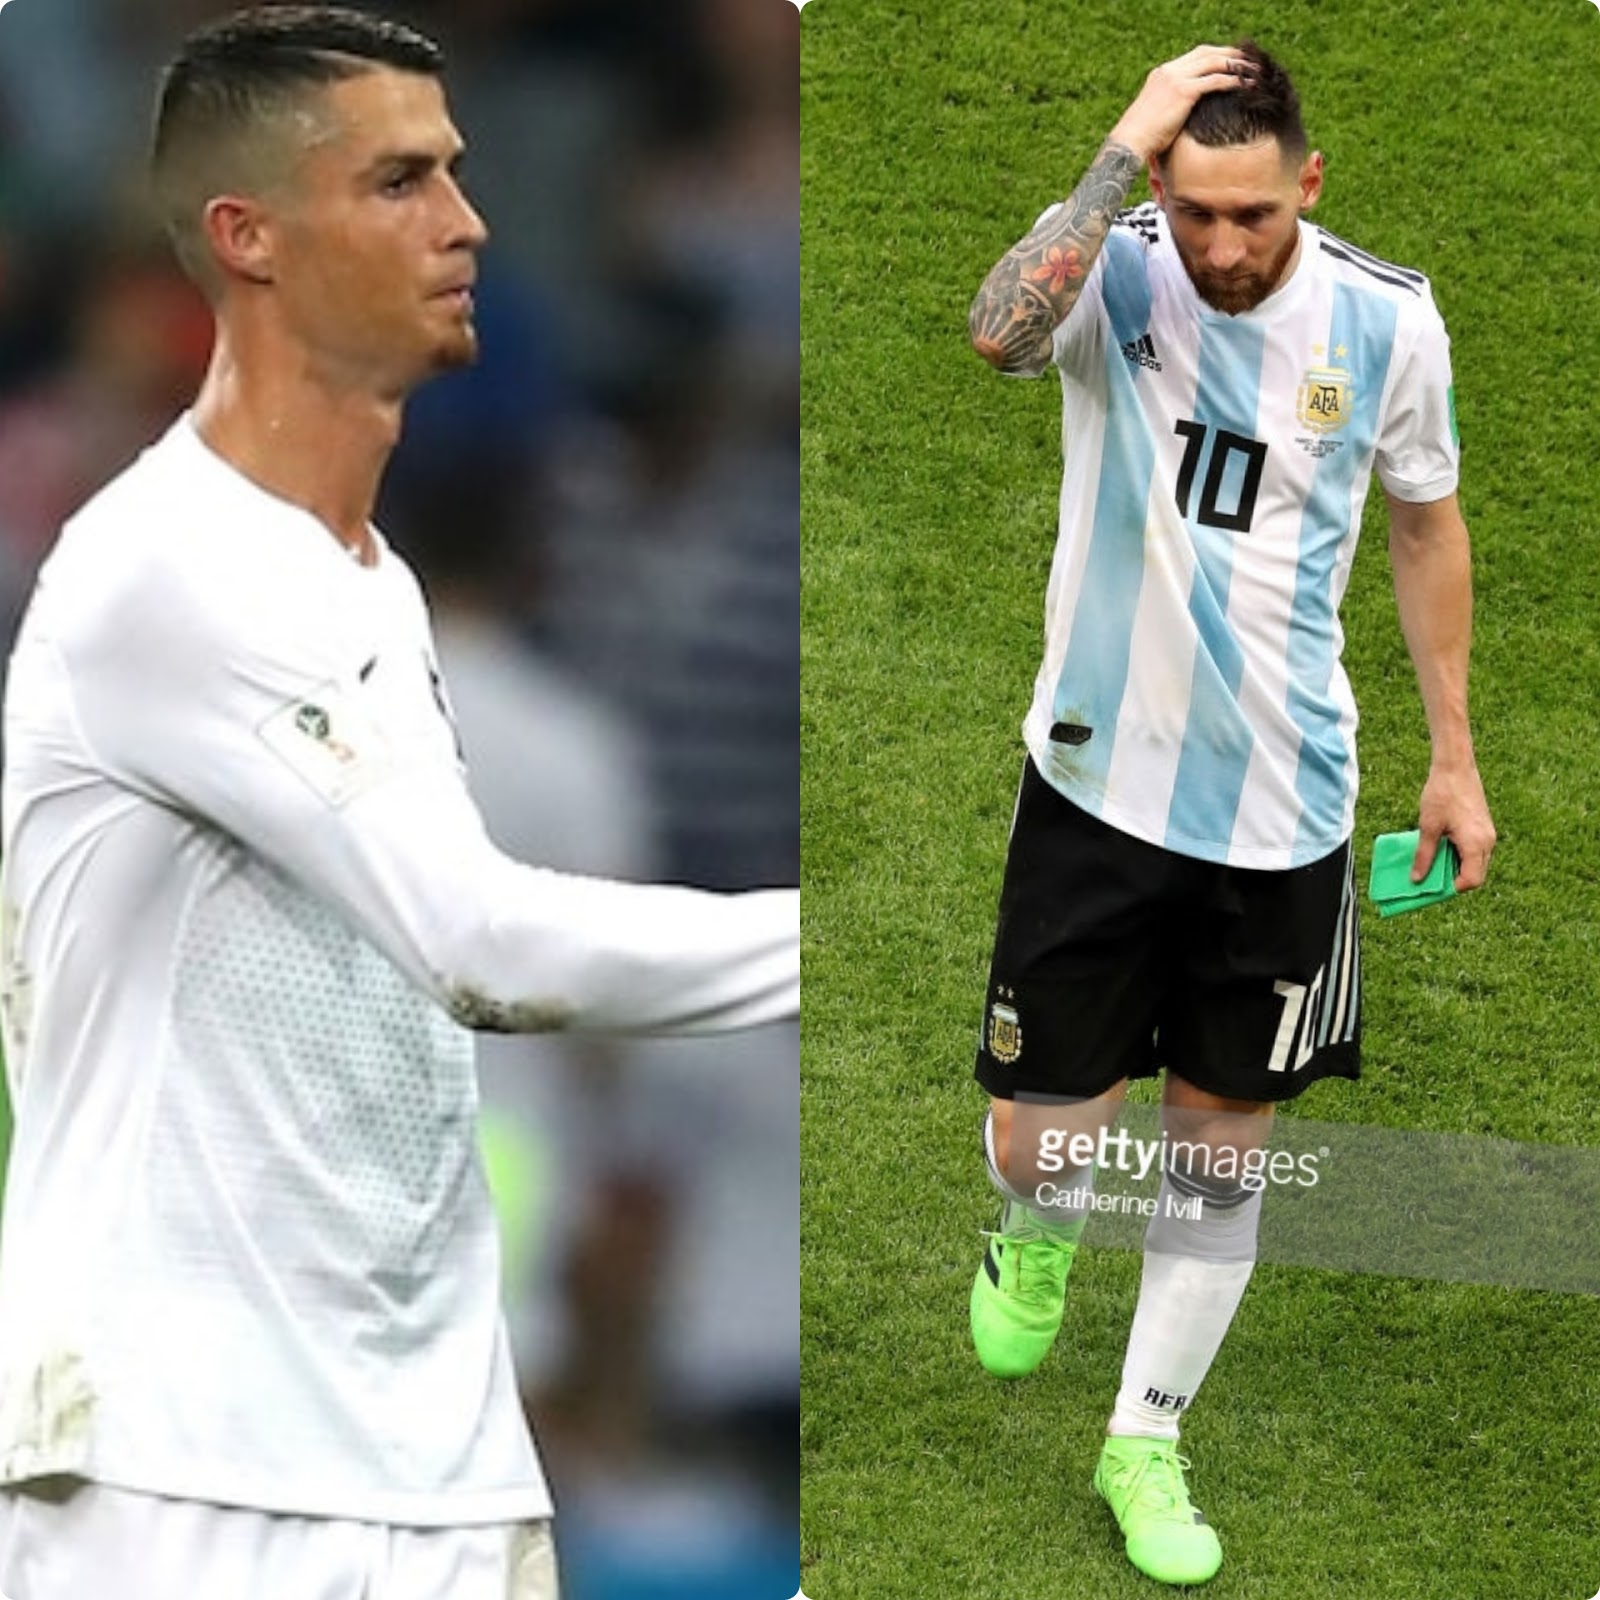 Messi and Ronaldo looking dejected